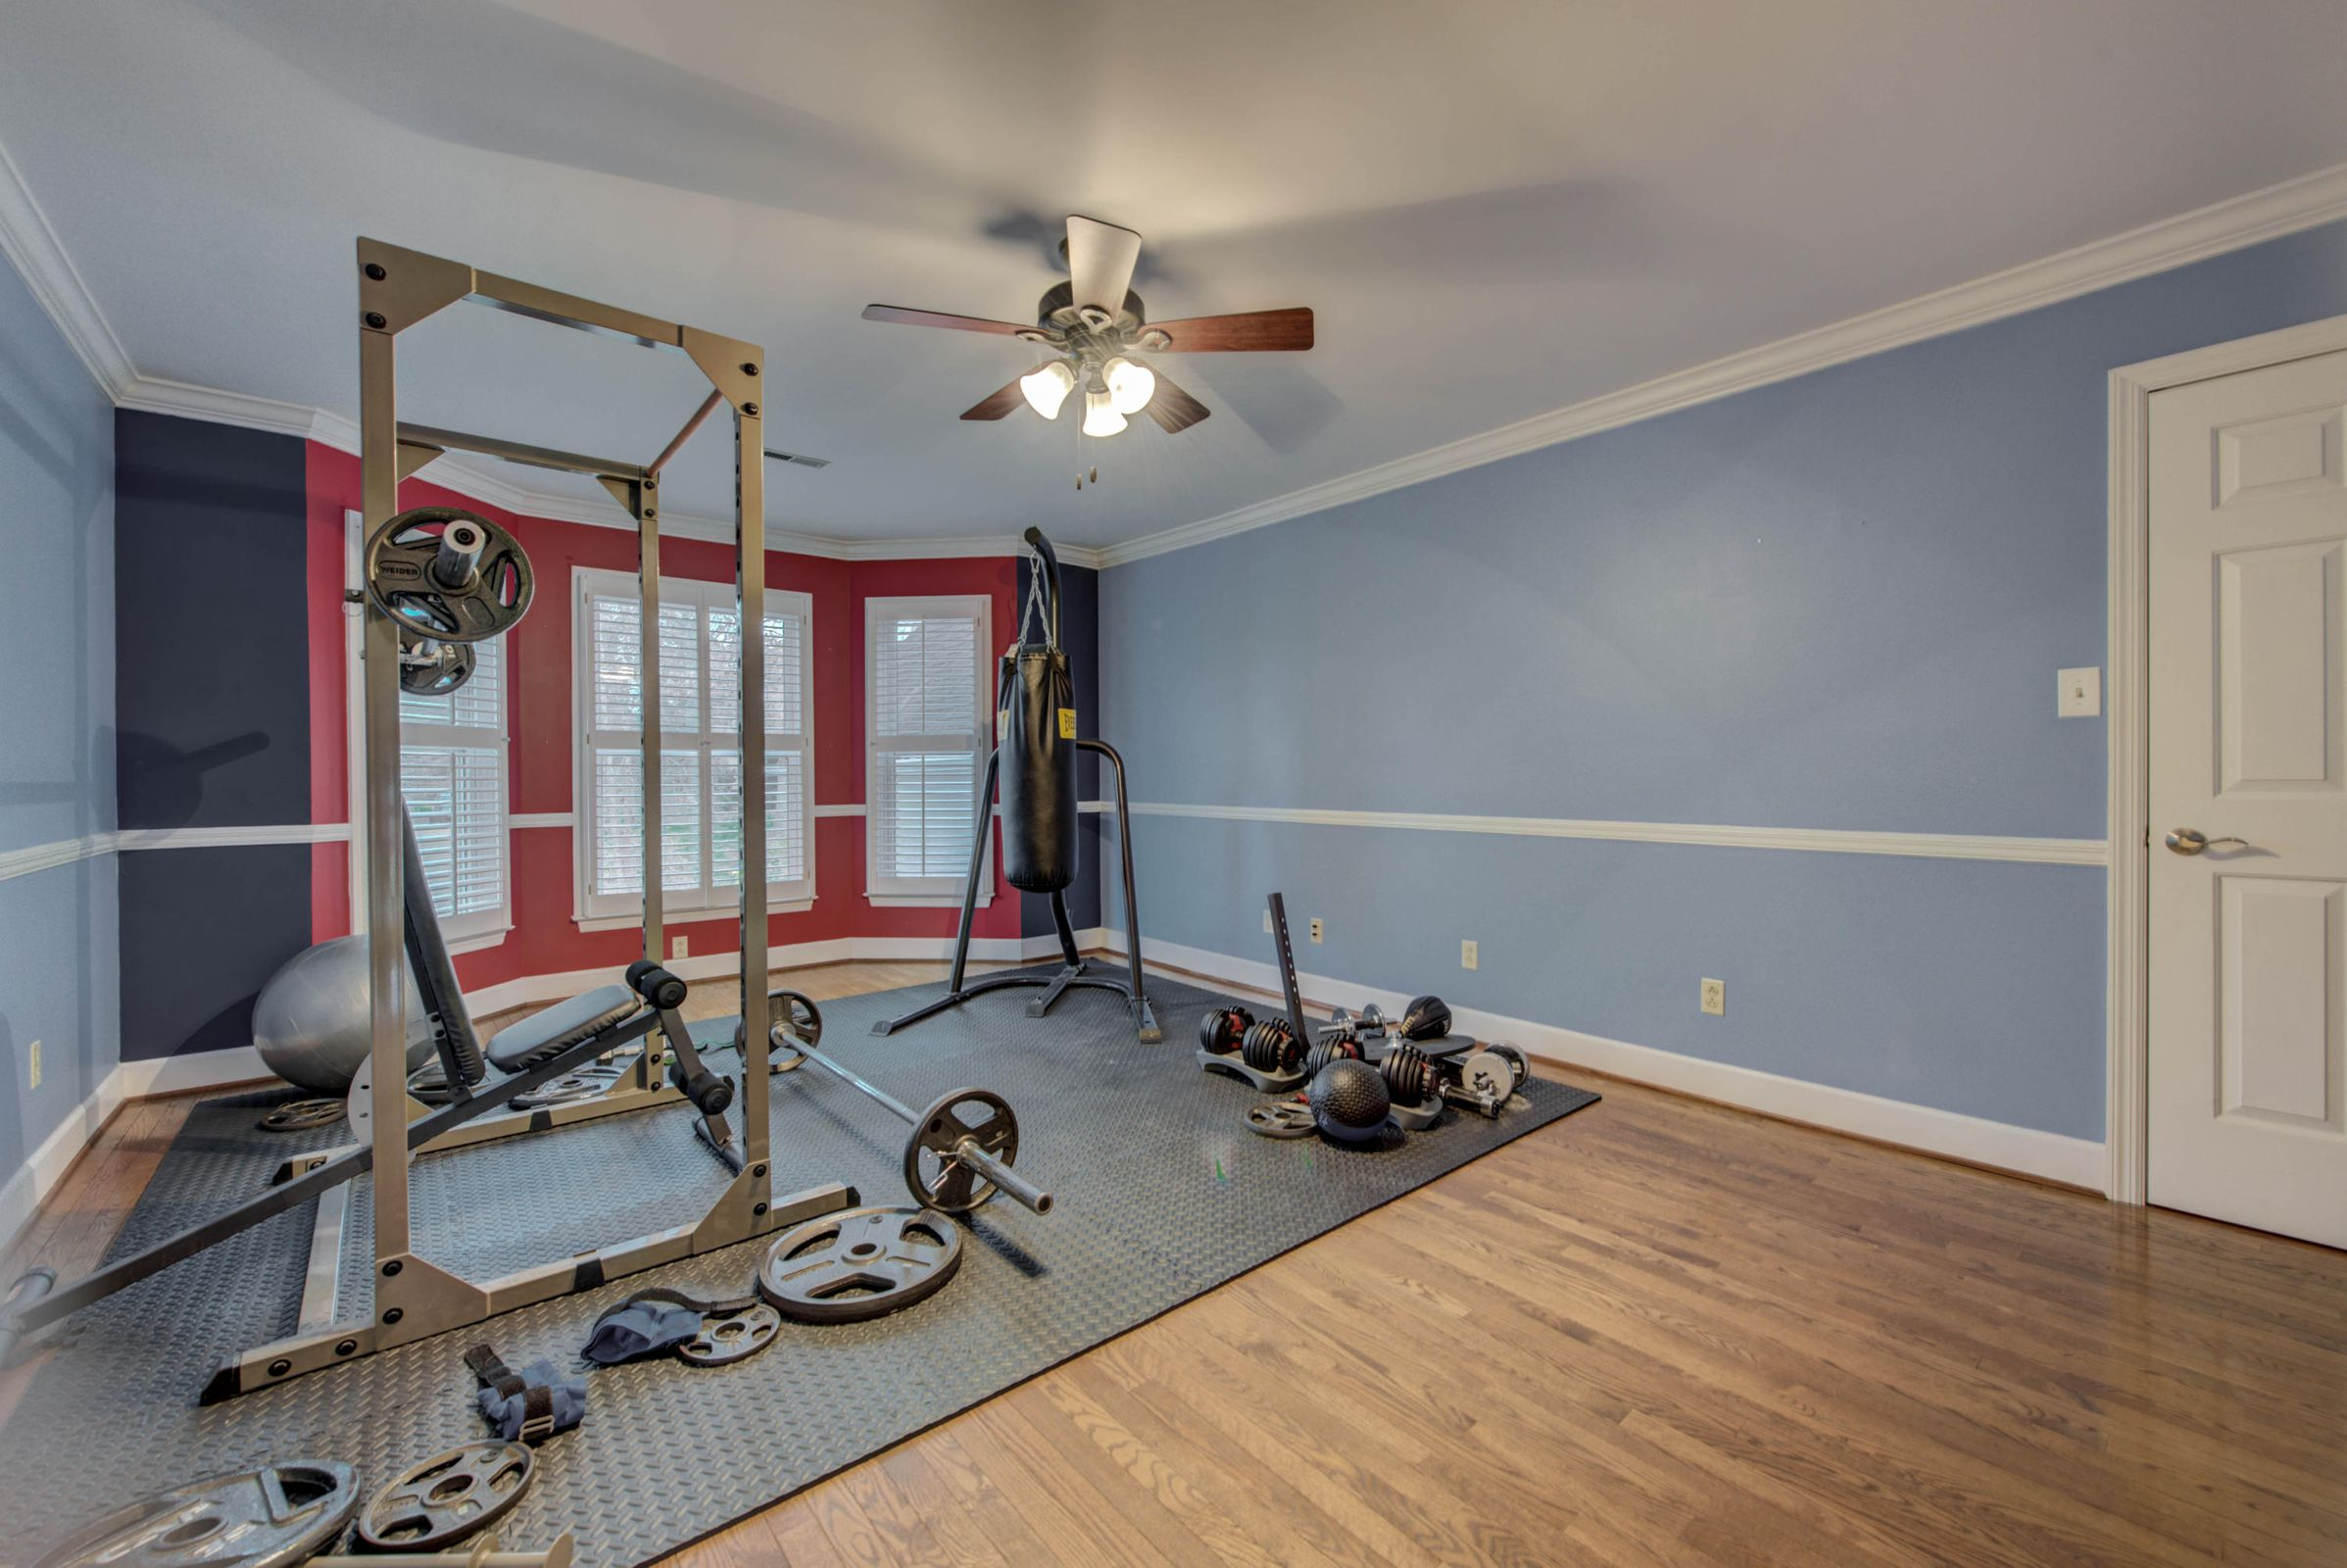 SECONDARY BEDROOM USED AS WORKOUT AREA